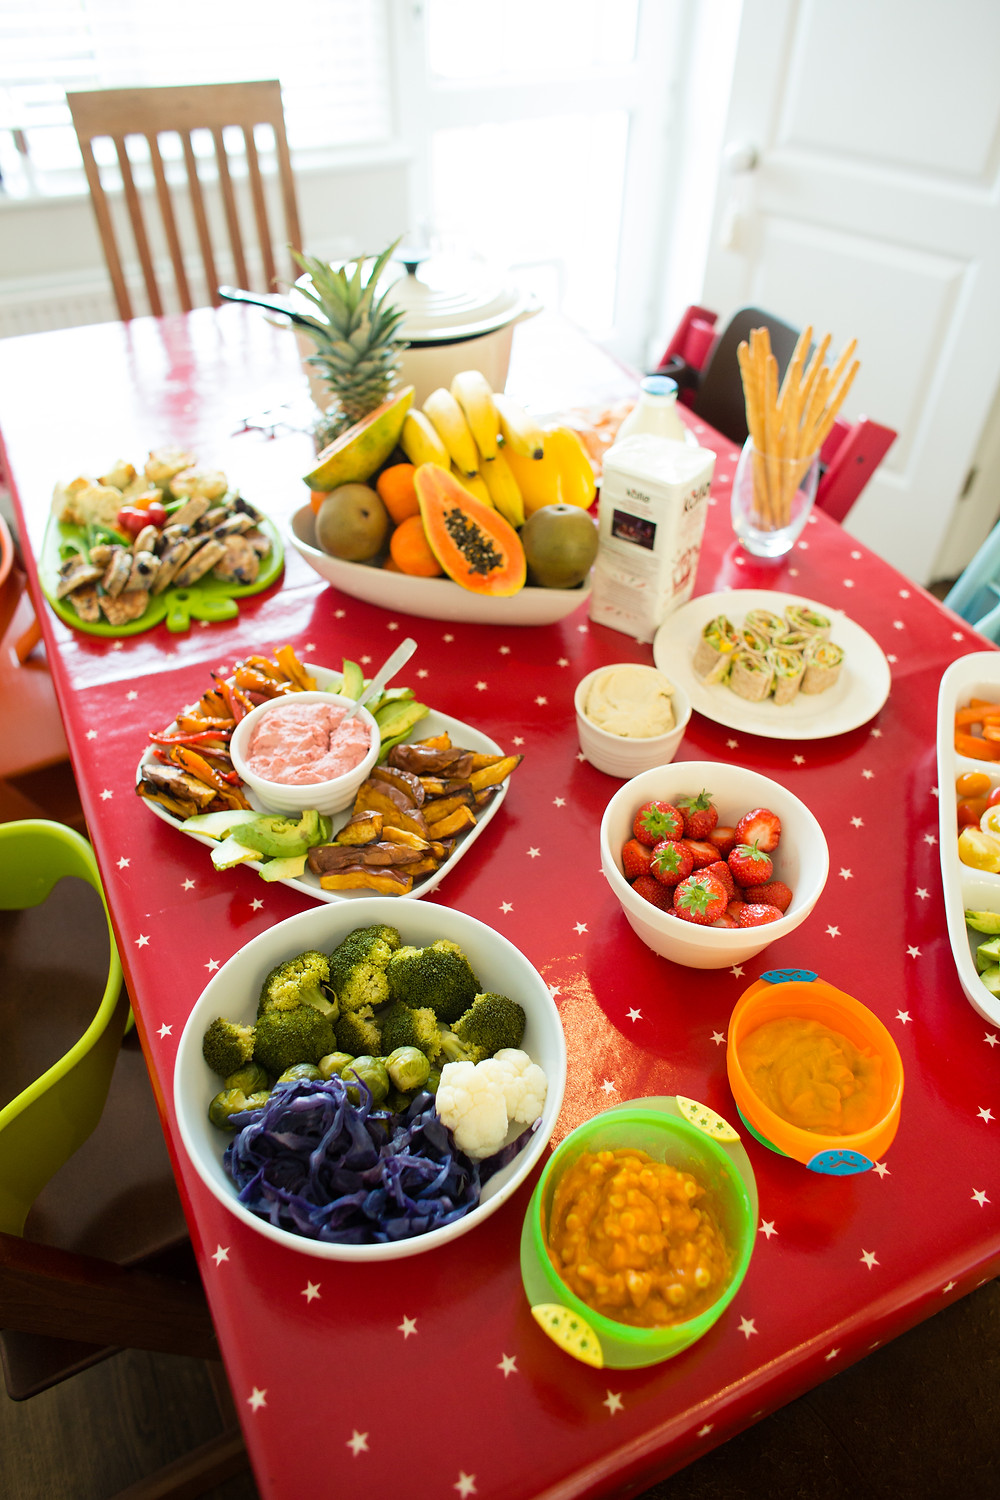 Foods on trial at our weaning workshop!